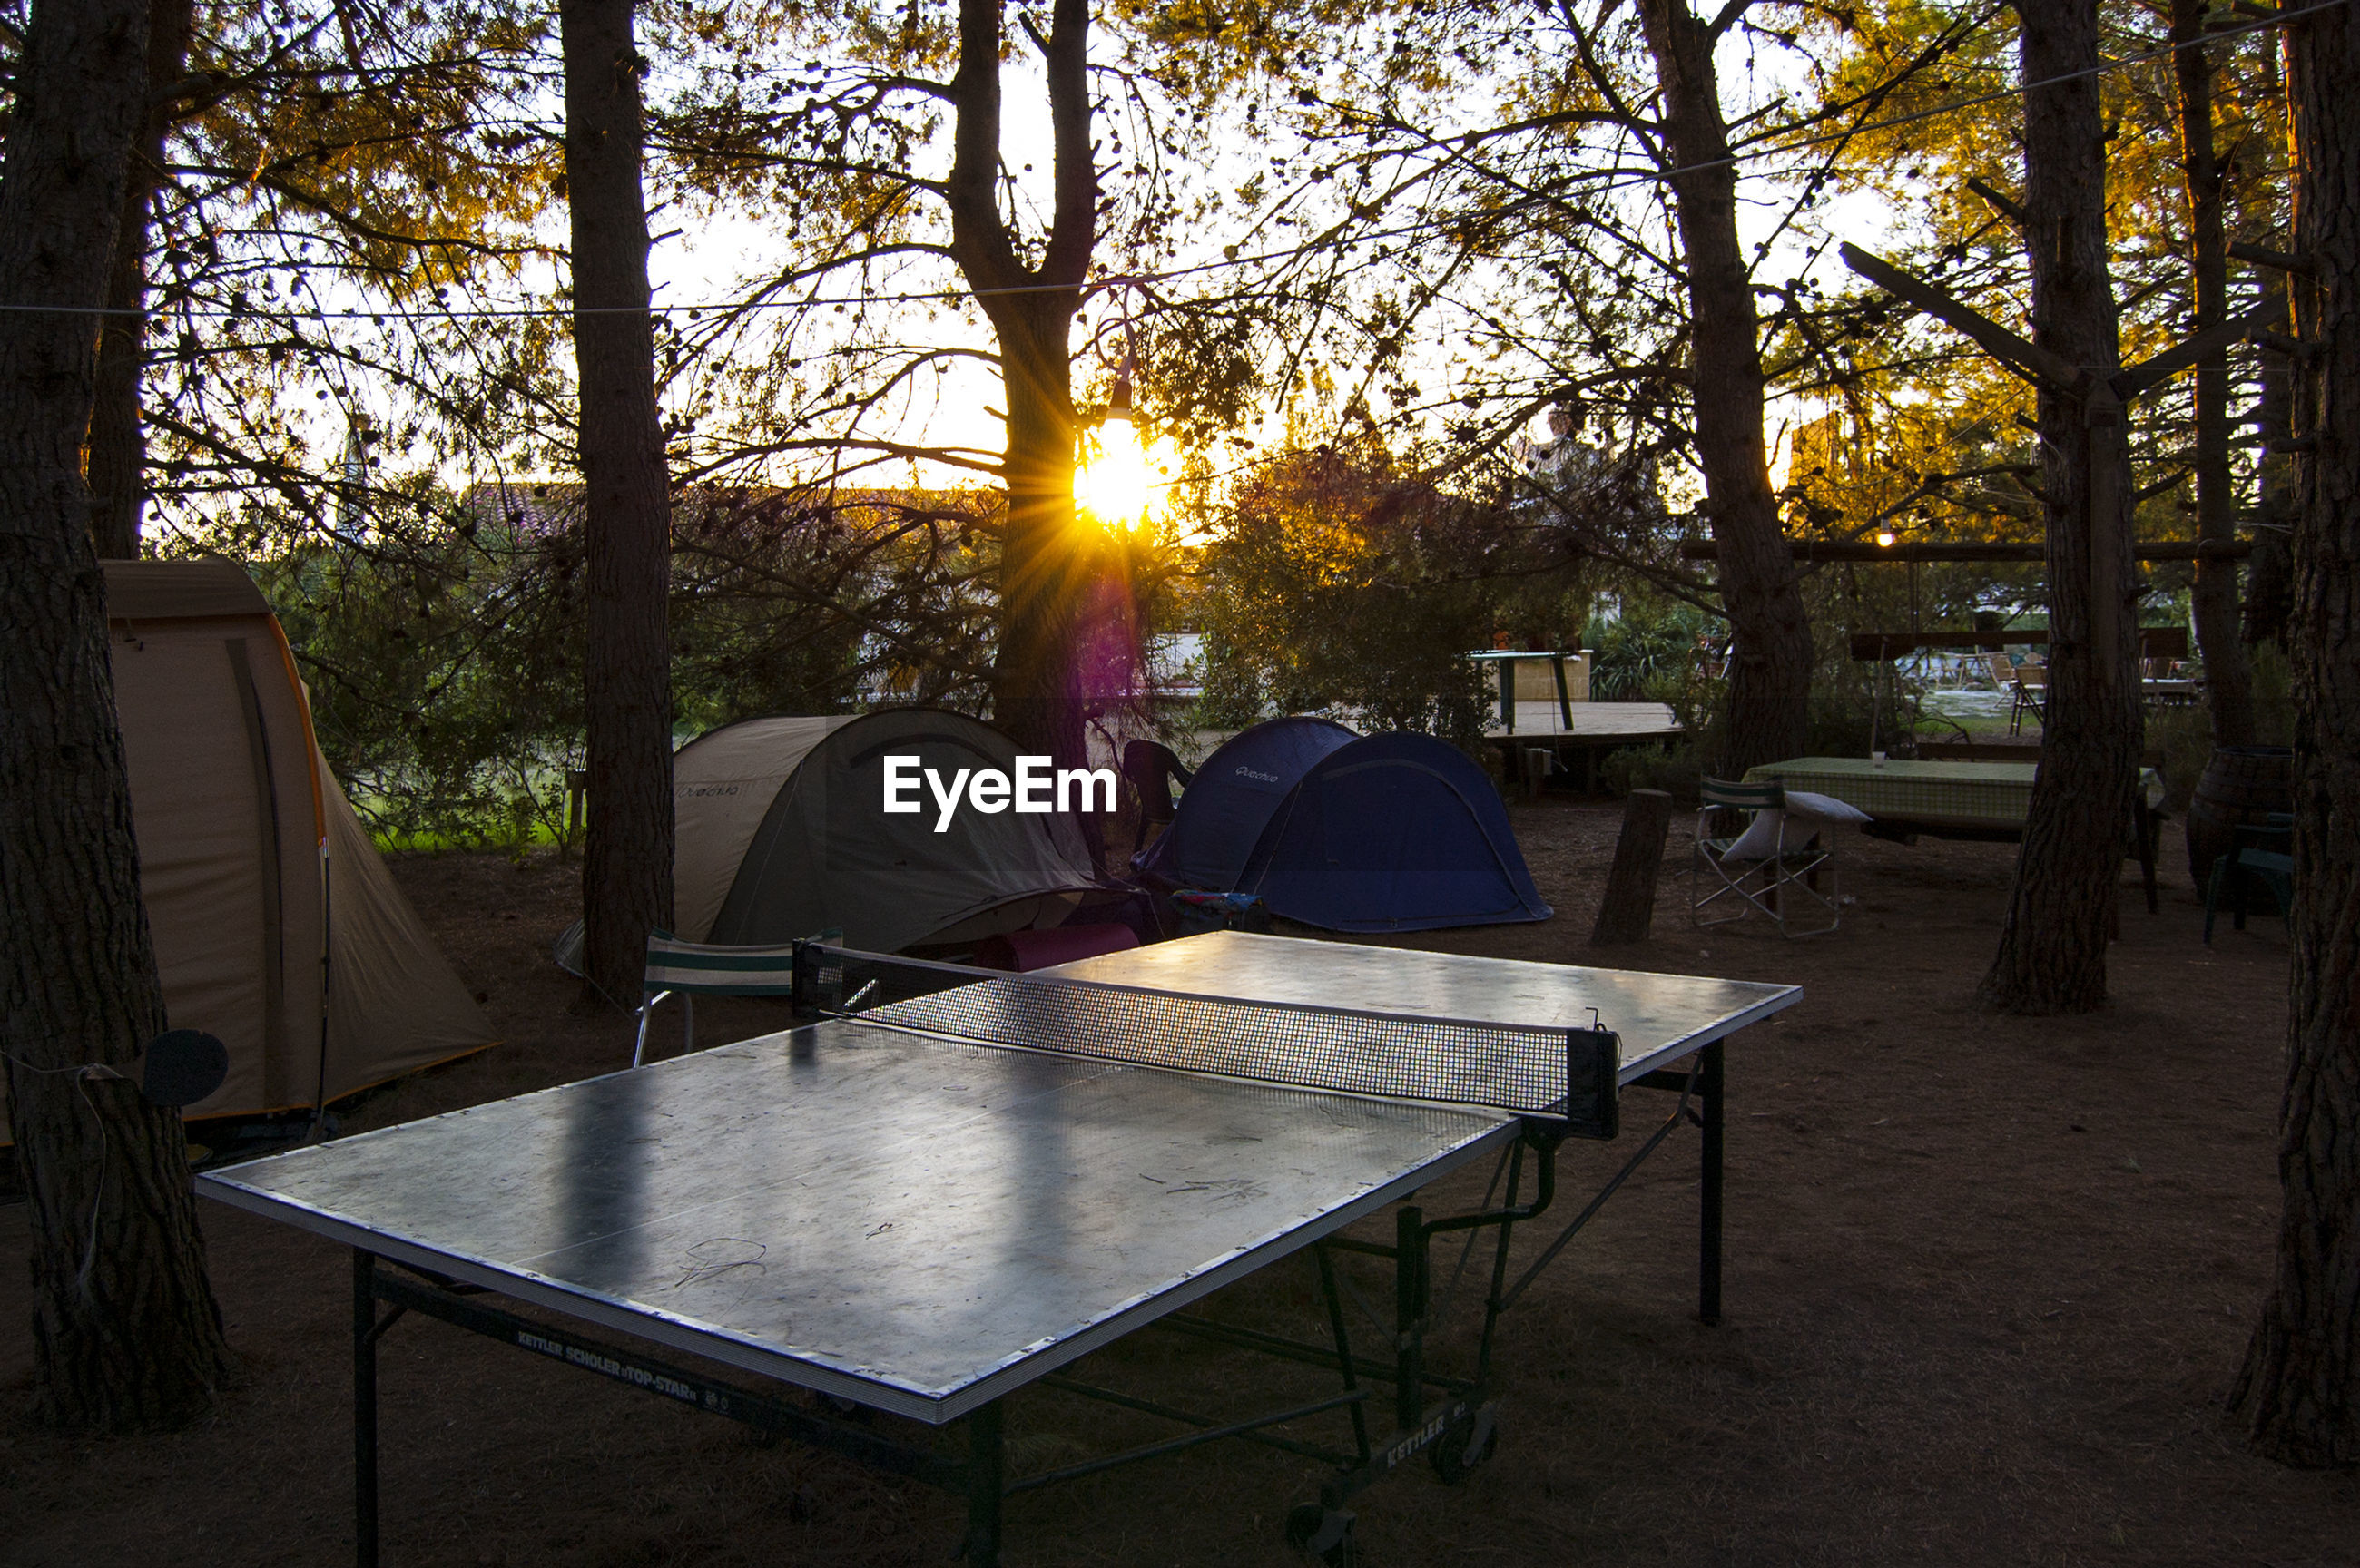 Camping site with table tennis table at sunset